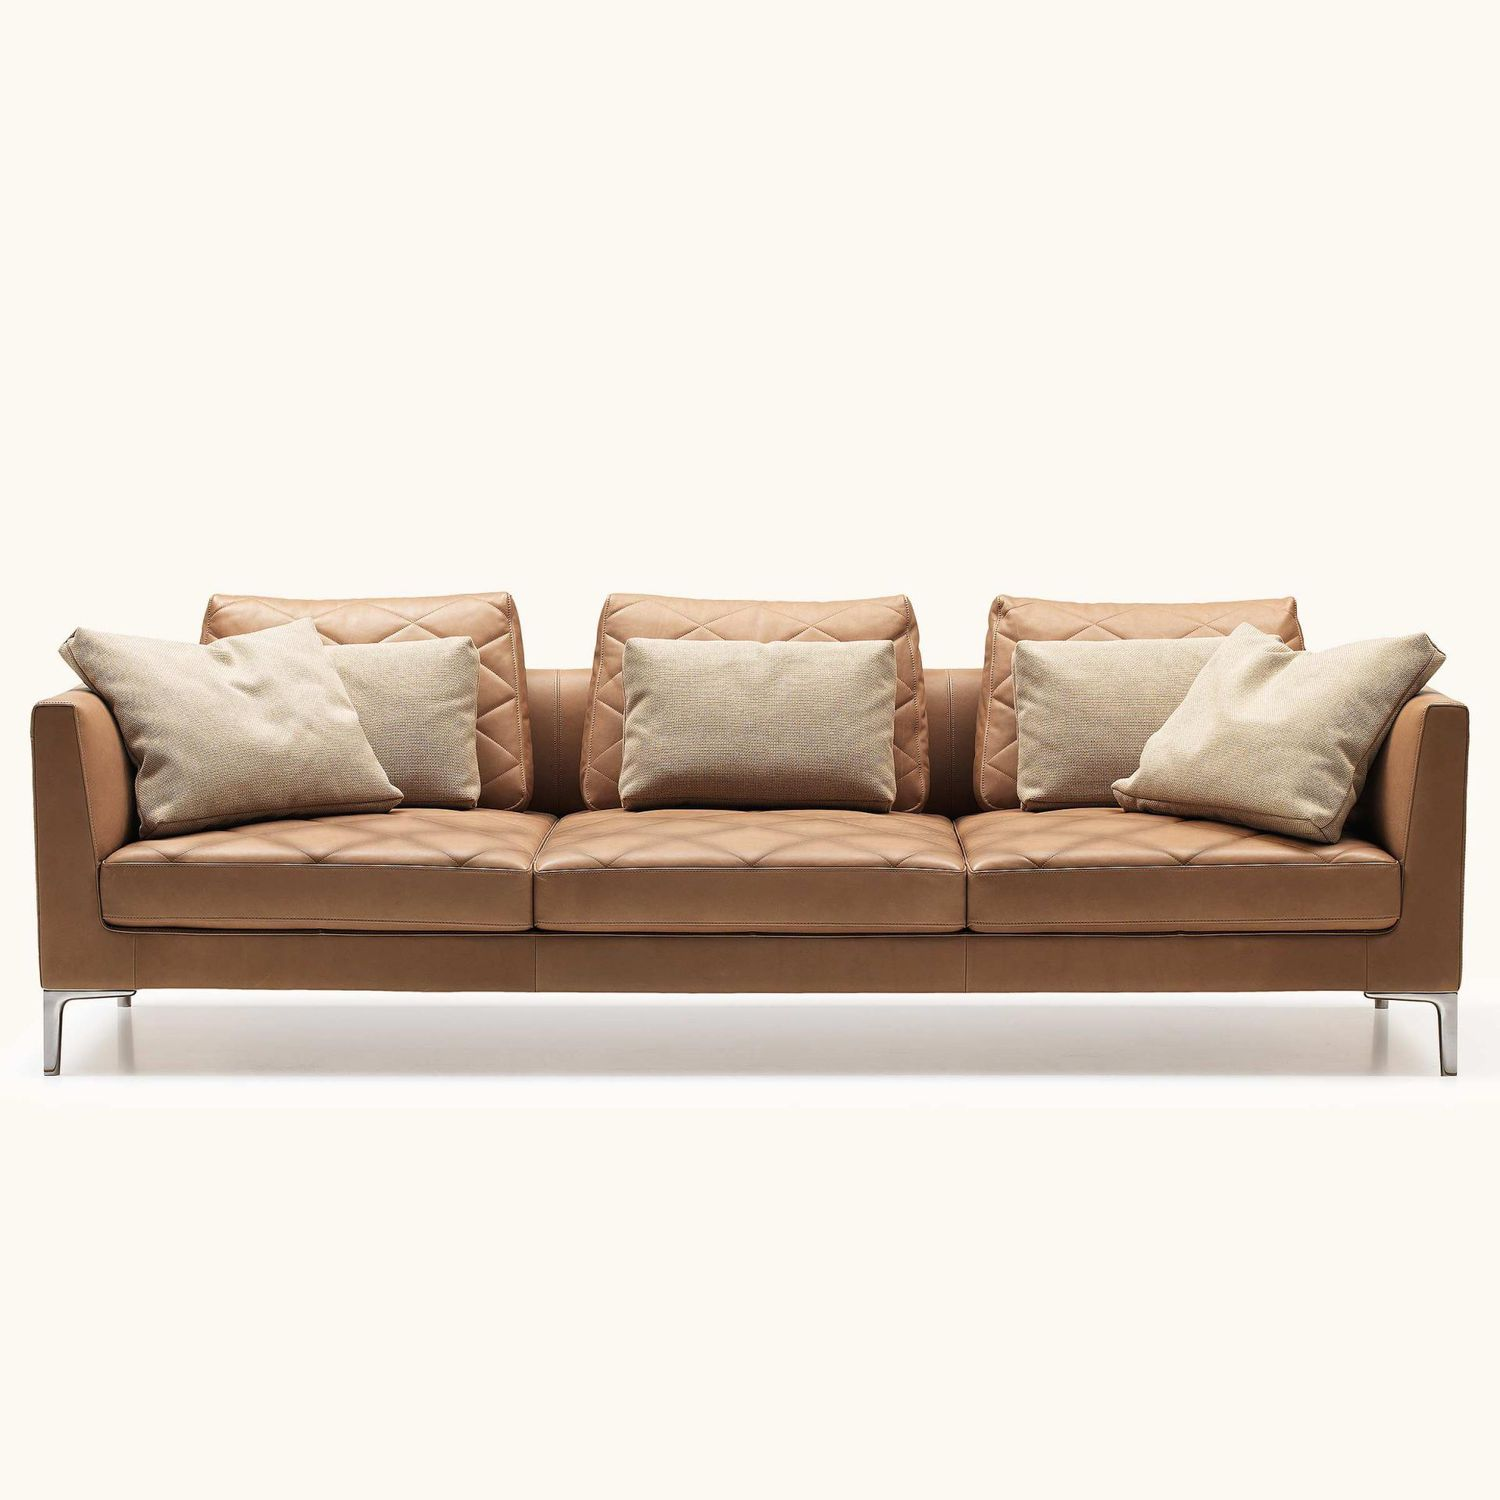 Contemporary sofa / leather / wood / 2-person - DS-48 by Gordon ...